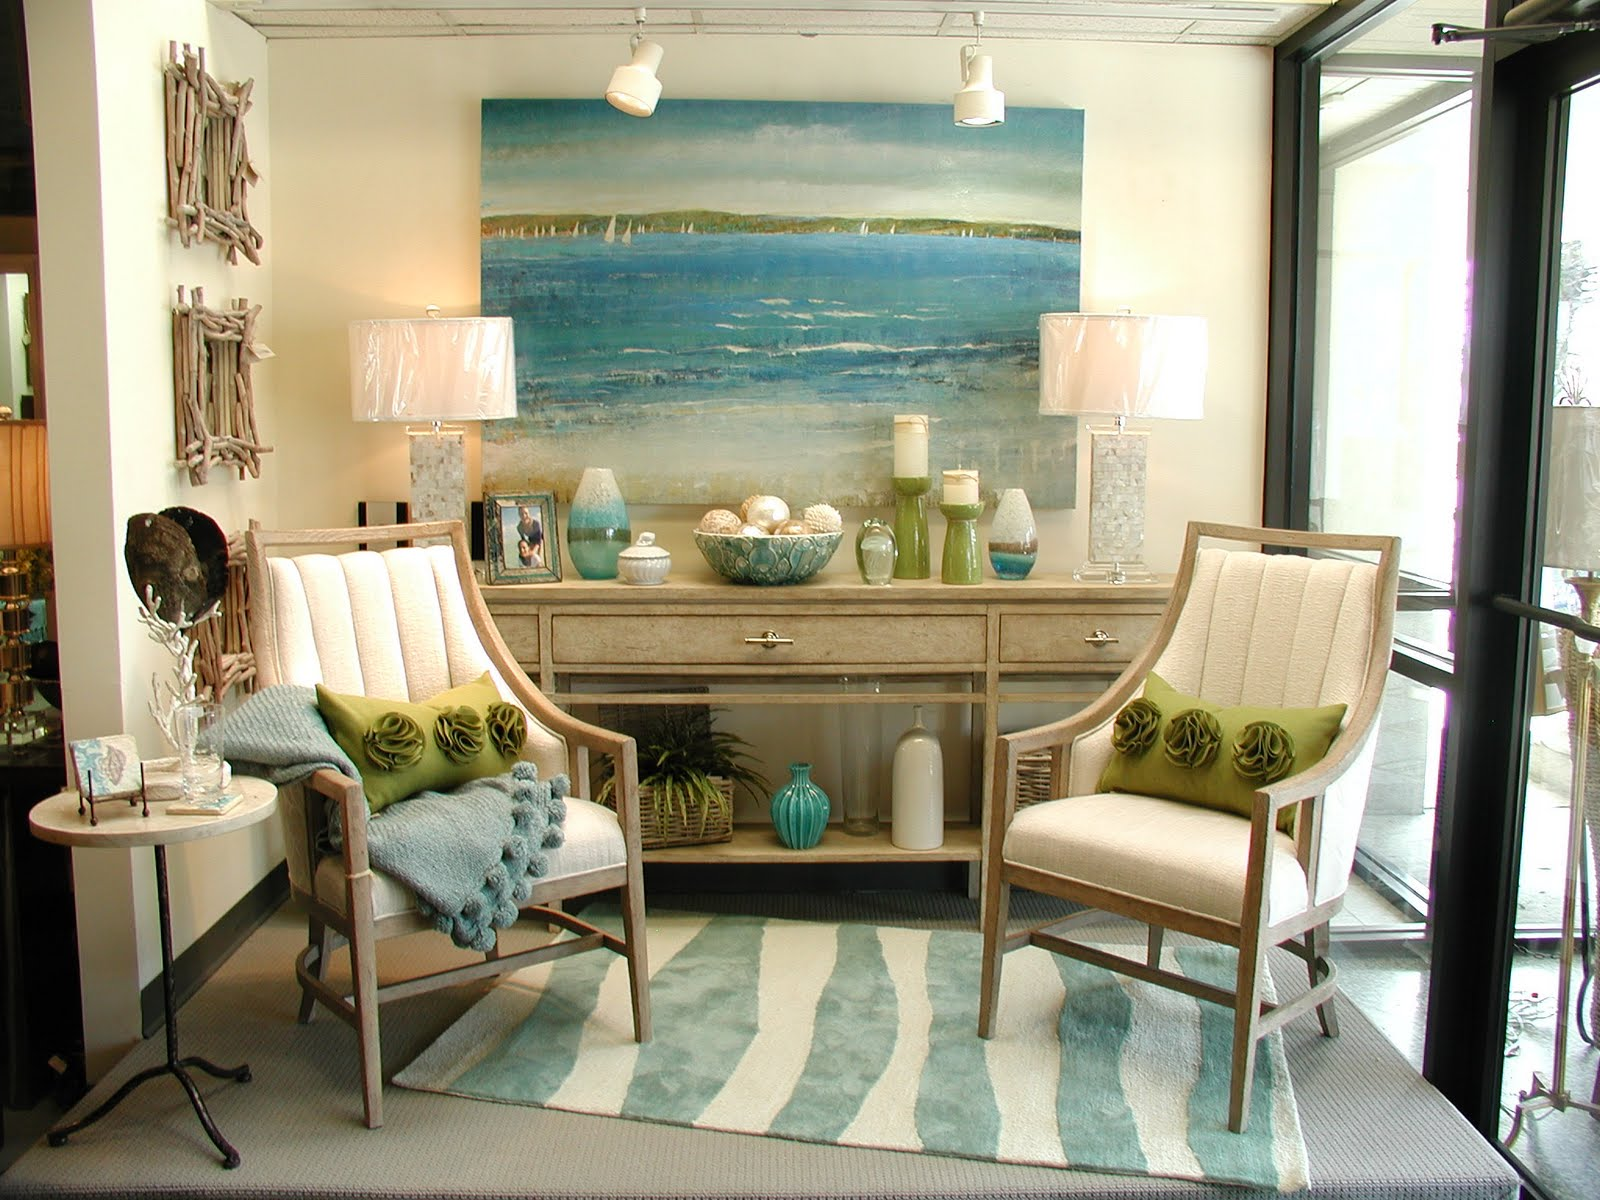 Details of design interior design in annapolis this summer for Interior designers in